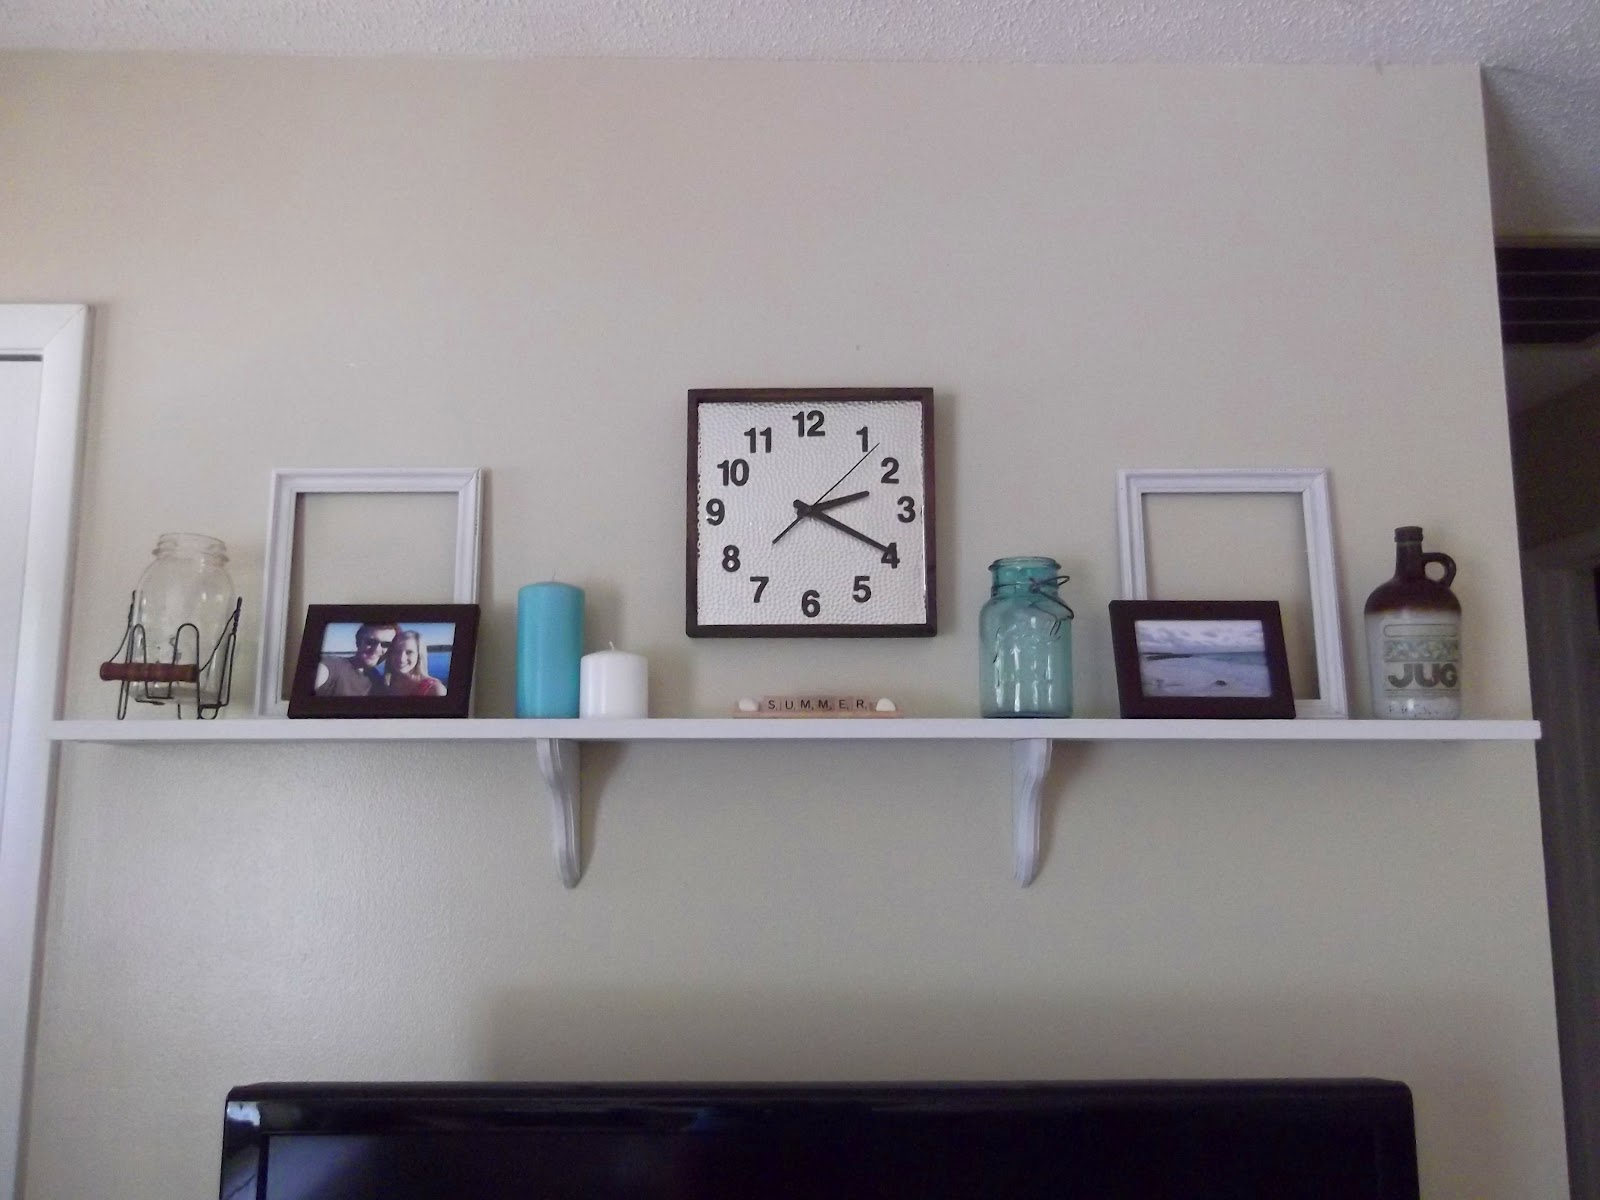 Thrifty 31 blog new shelf above tv for Long wall decoration living room